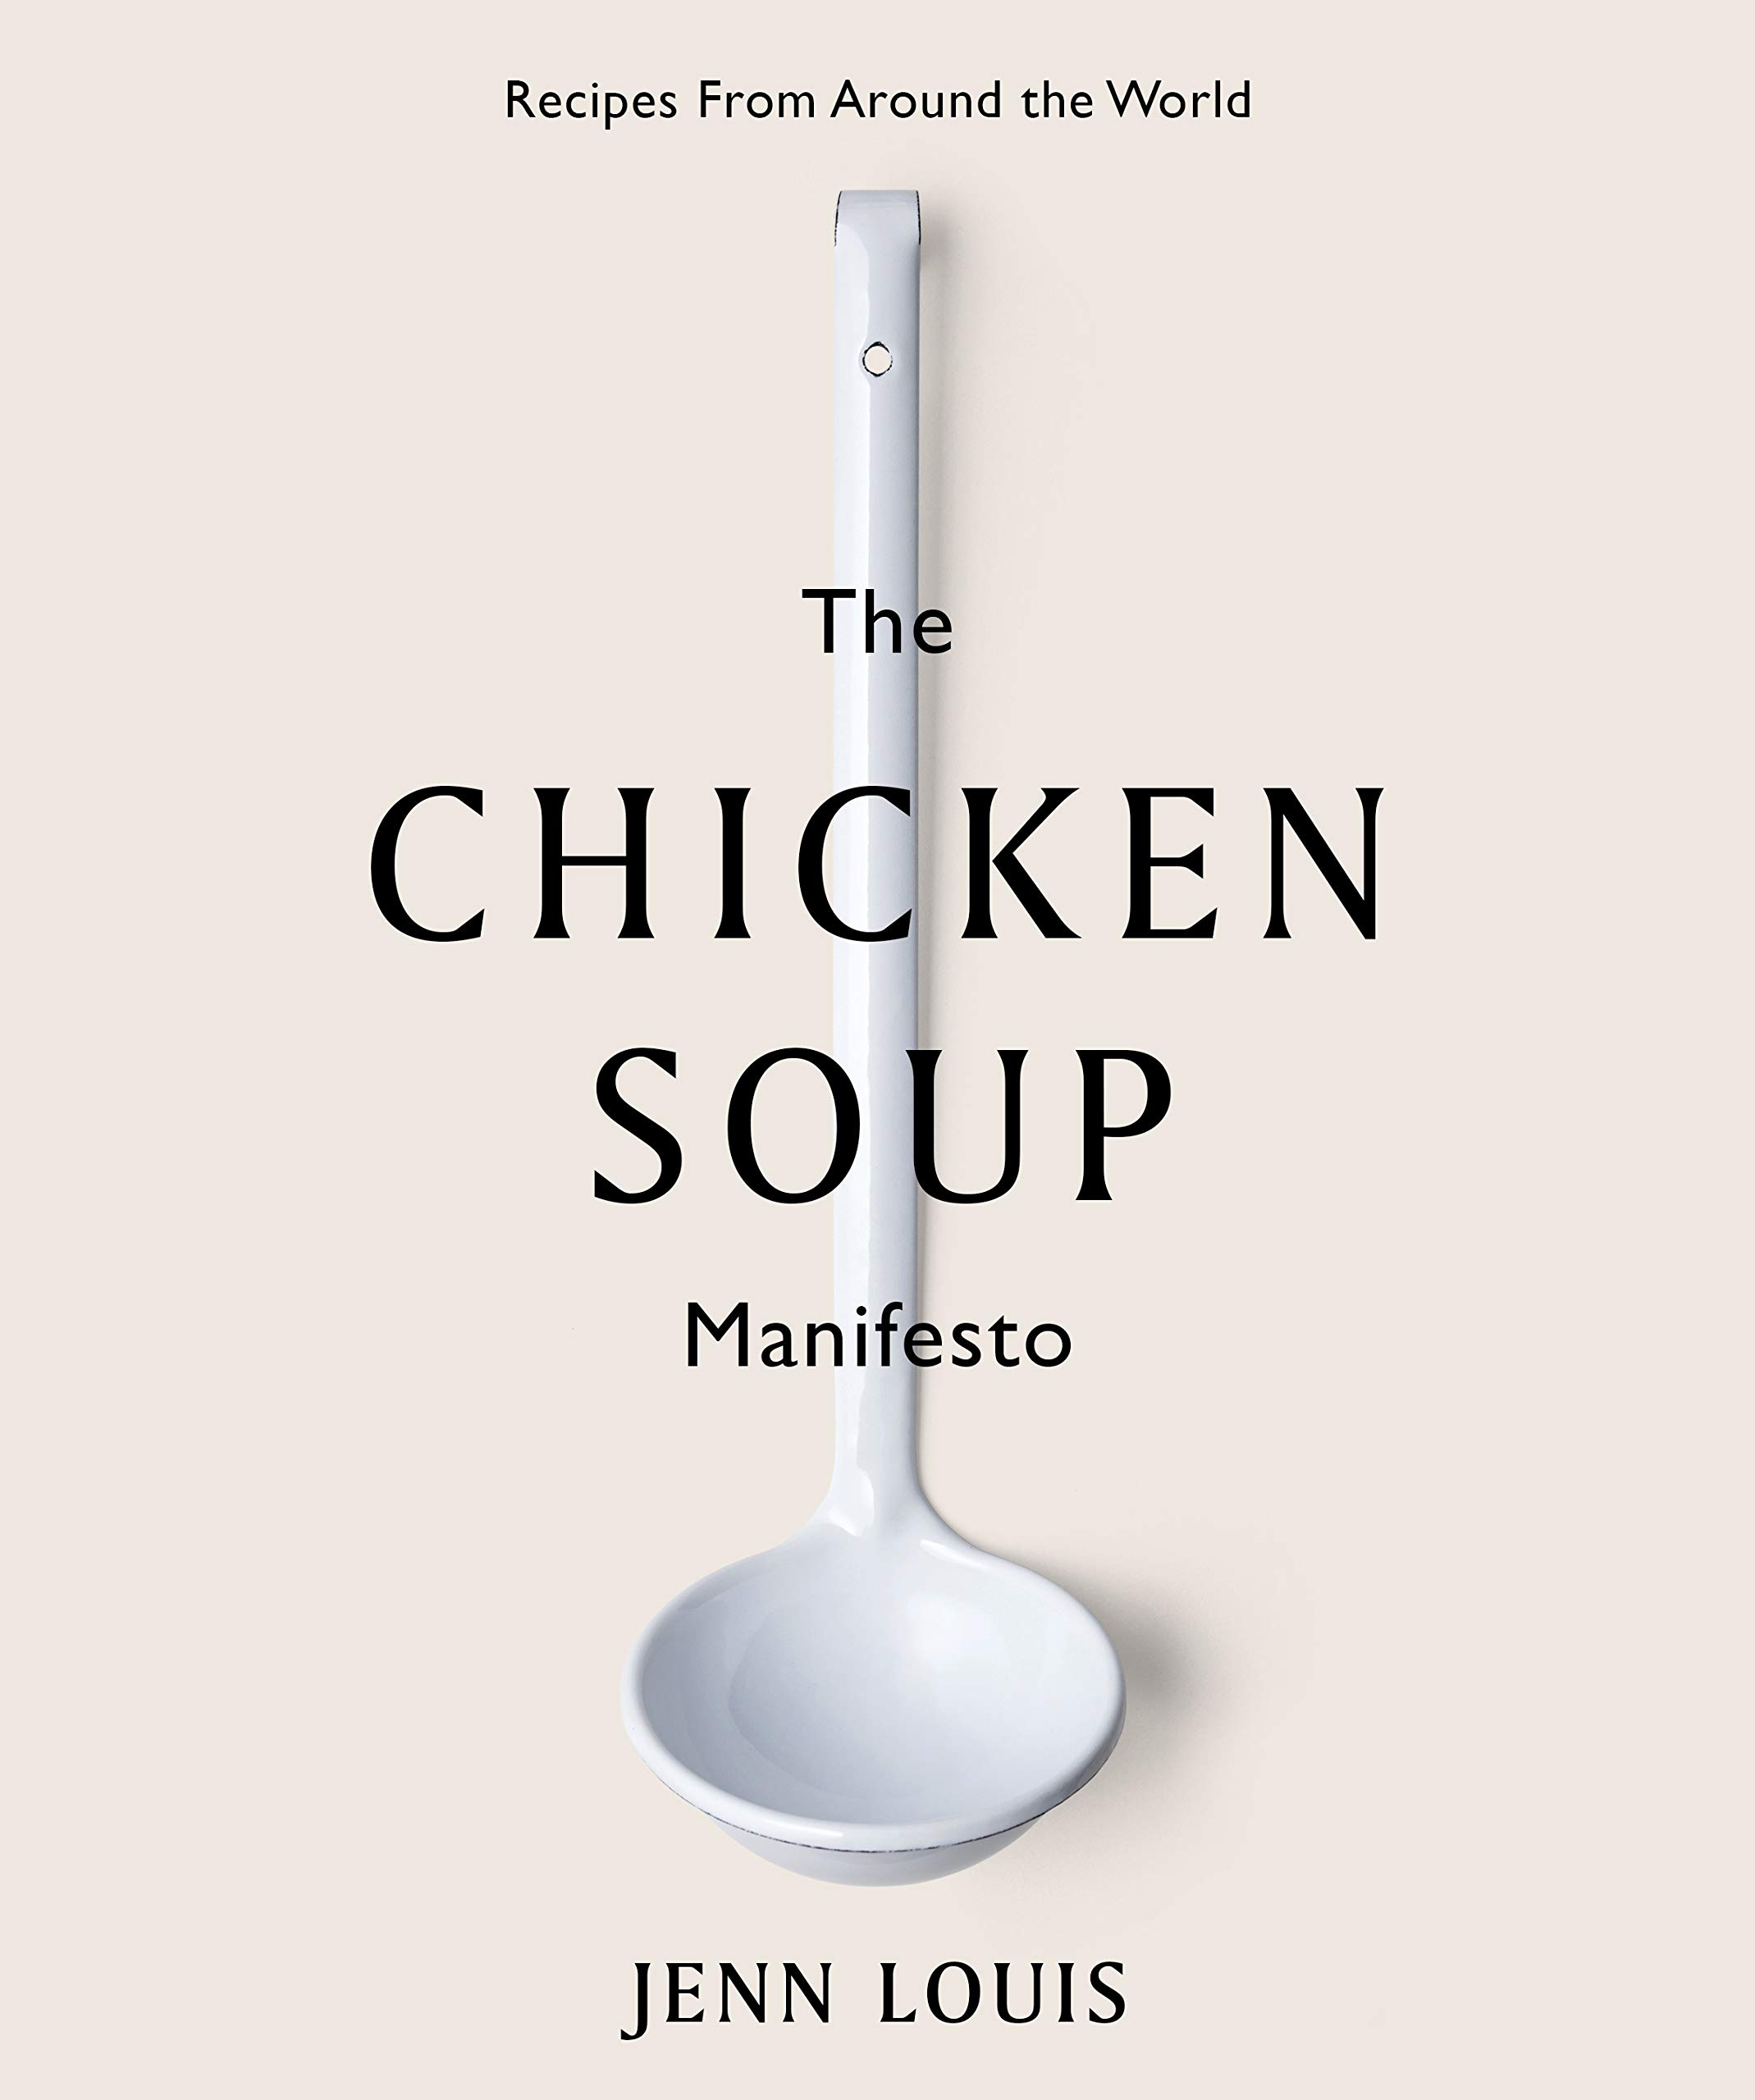 The Chicken Soup Manifesto: Recipes from around the world by Jenn Louis